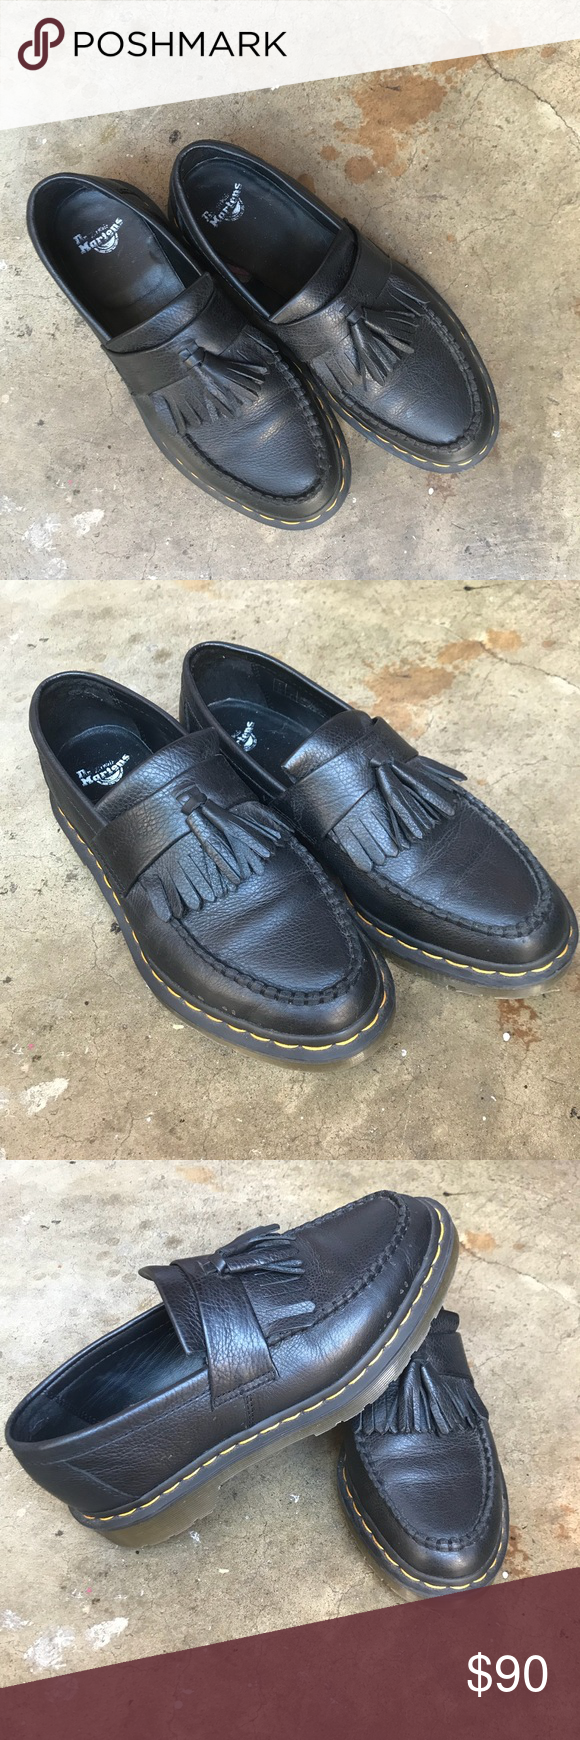 """91838cada08 Dr. Martens Adrian """"Virginia"""" tassel loafer US 8 Dr. Martens Adrian tassel  loafer in black """"Virginia"""" leather. These shoes were purchased in January  of this ..."""